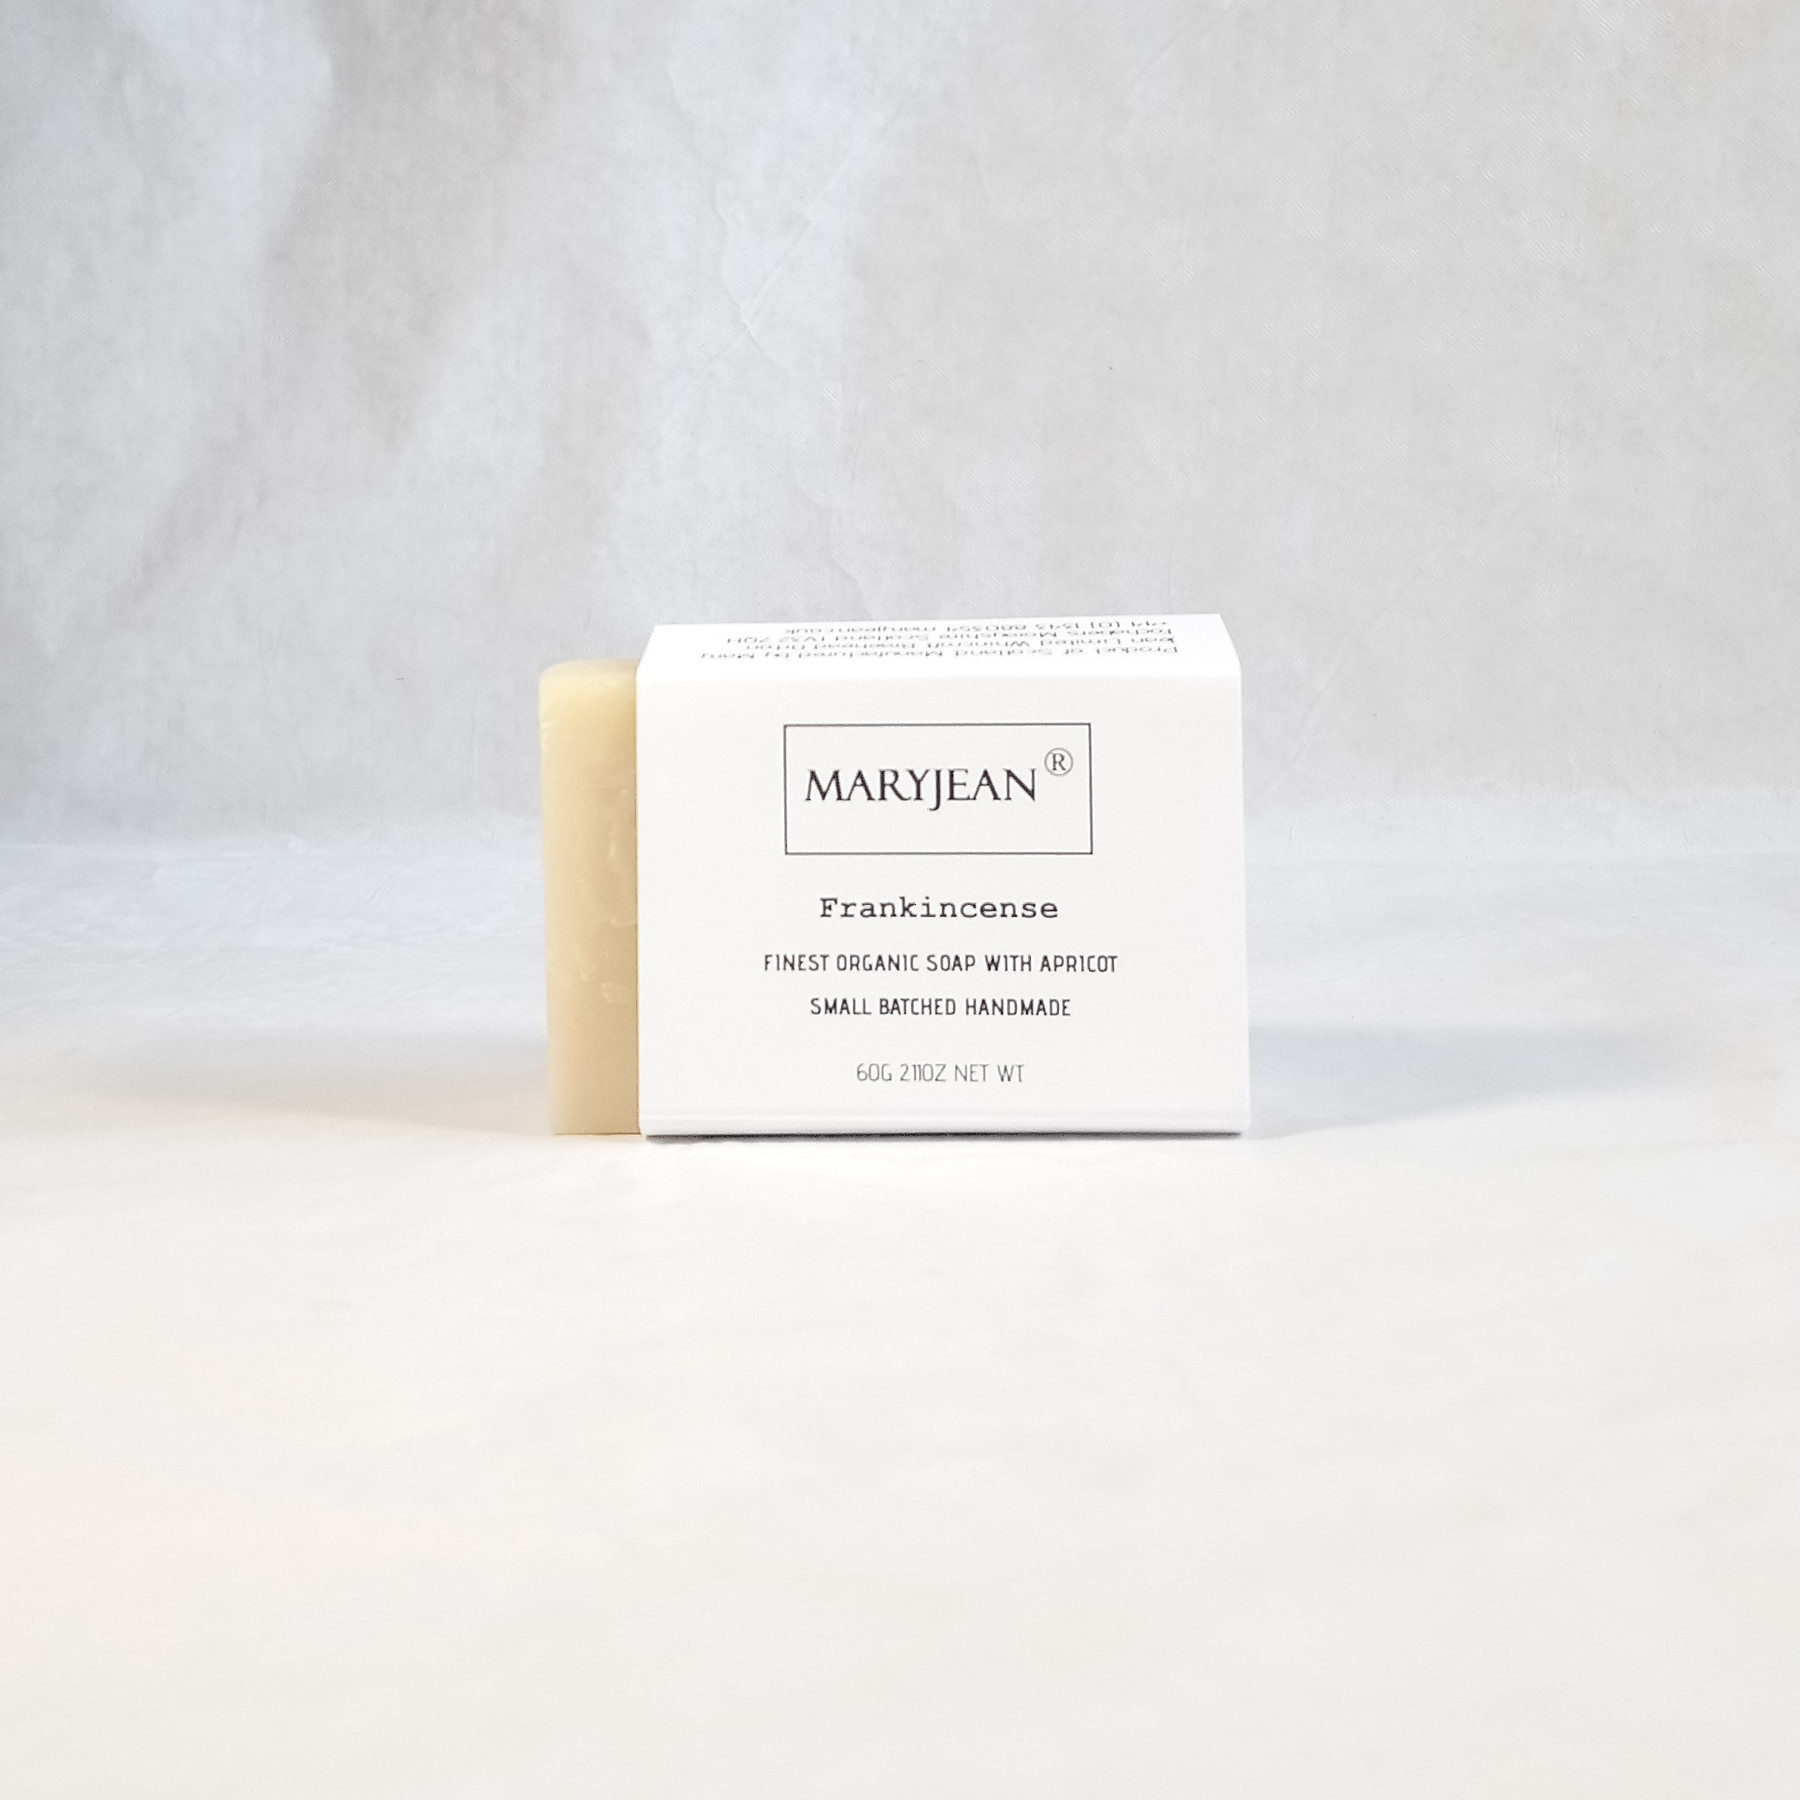 Best skin care soap bar for sun and environment damaged dry skin conditions use daily for best results Travel Size Organic Scottish Frankincense Soap Handmade With Apricot